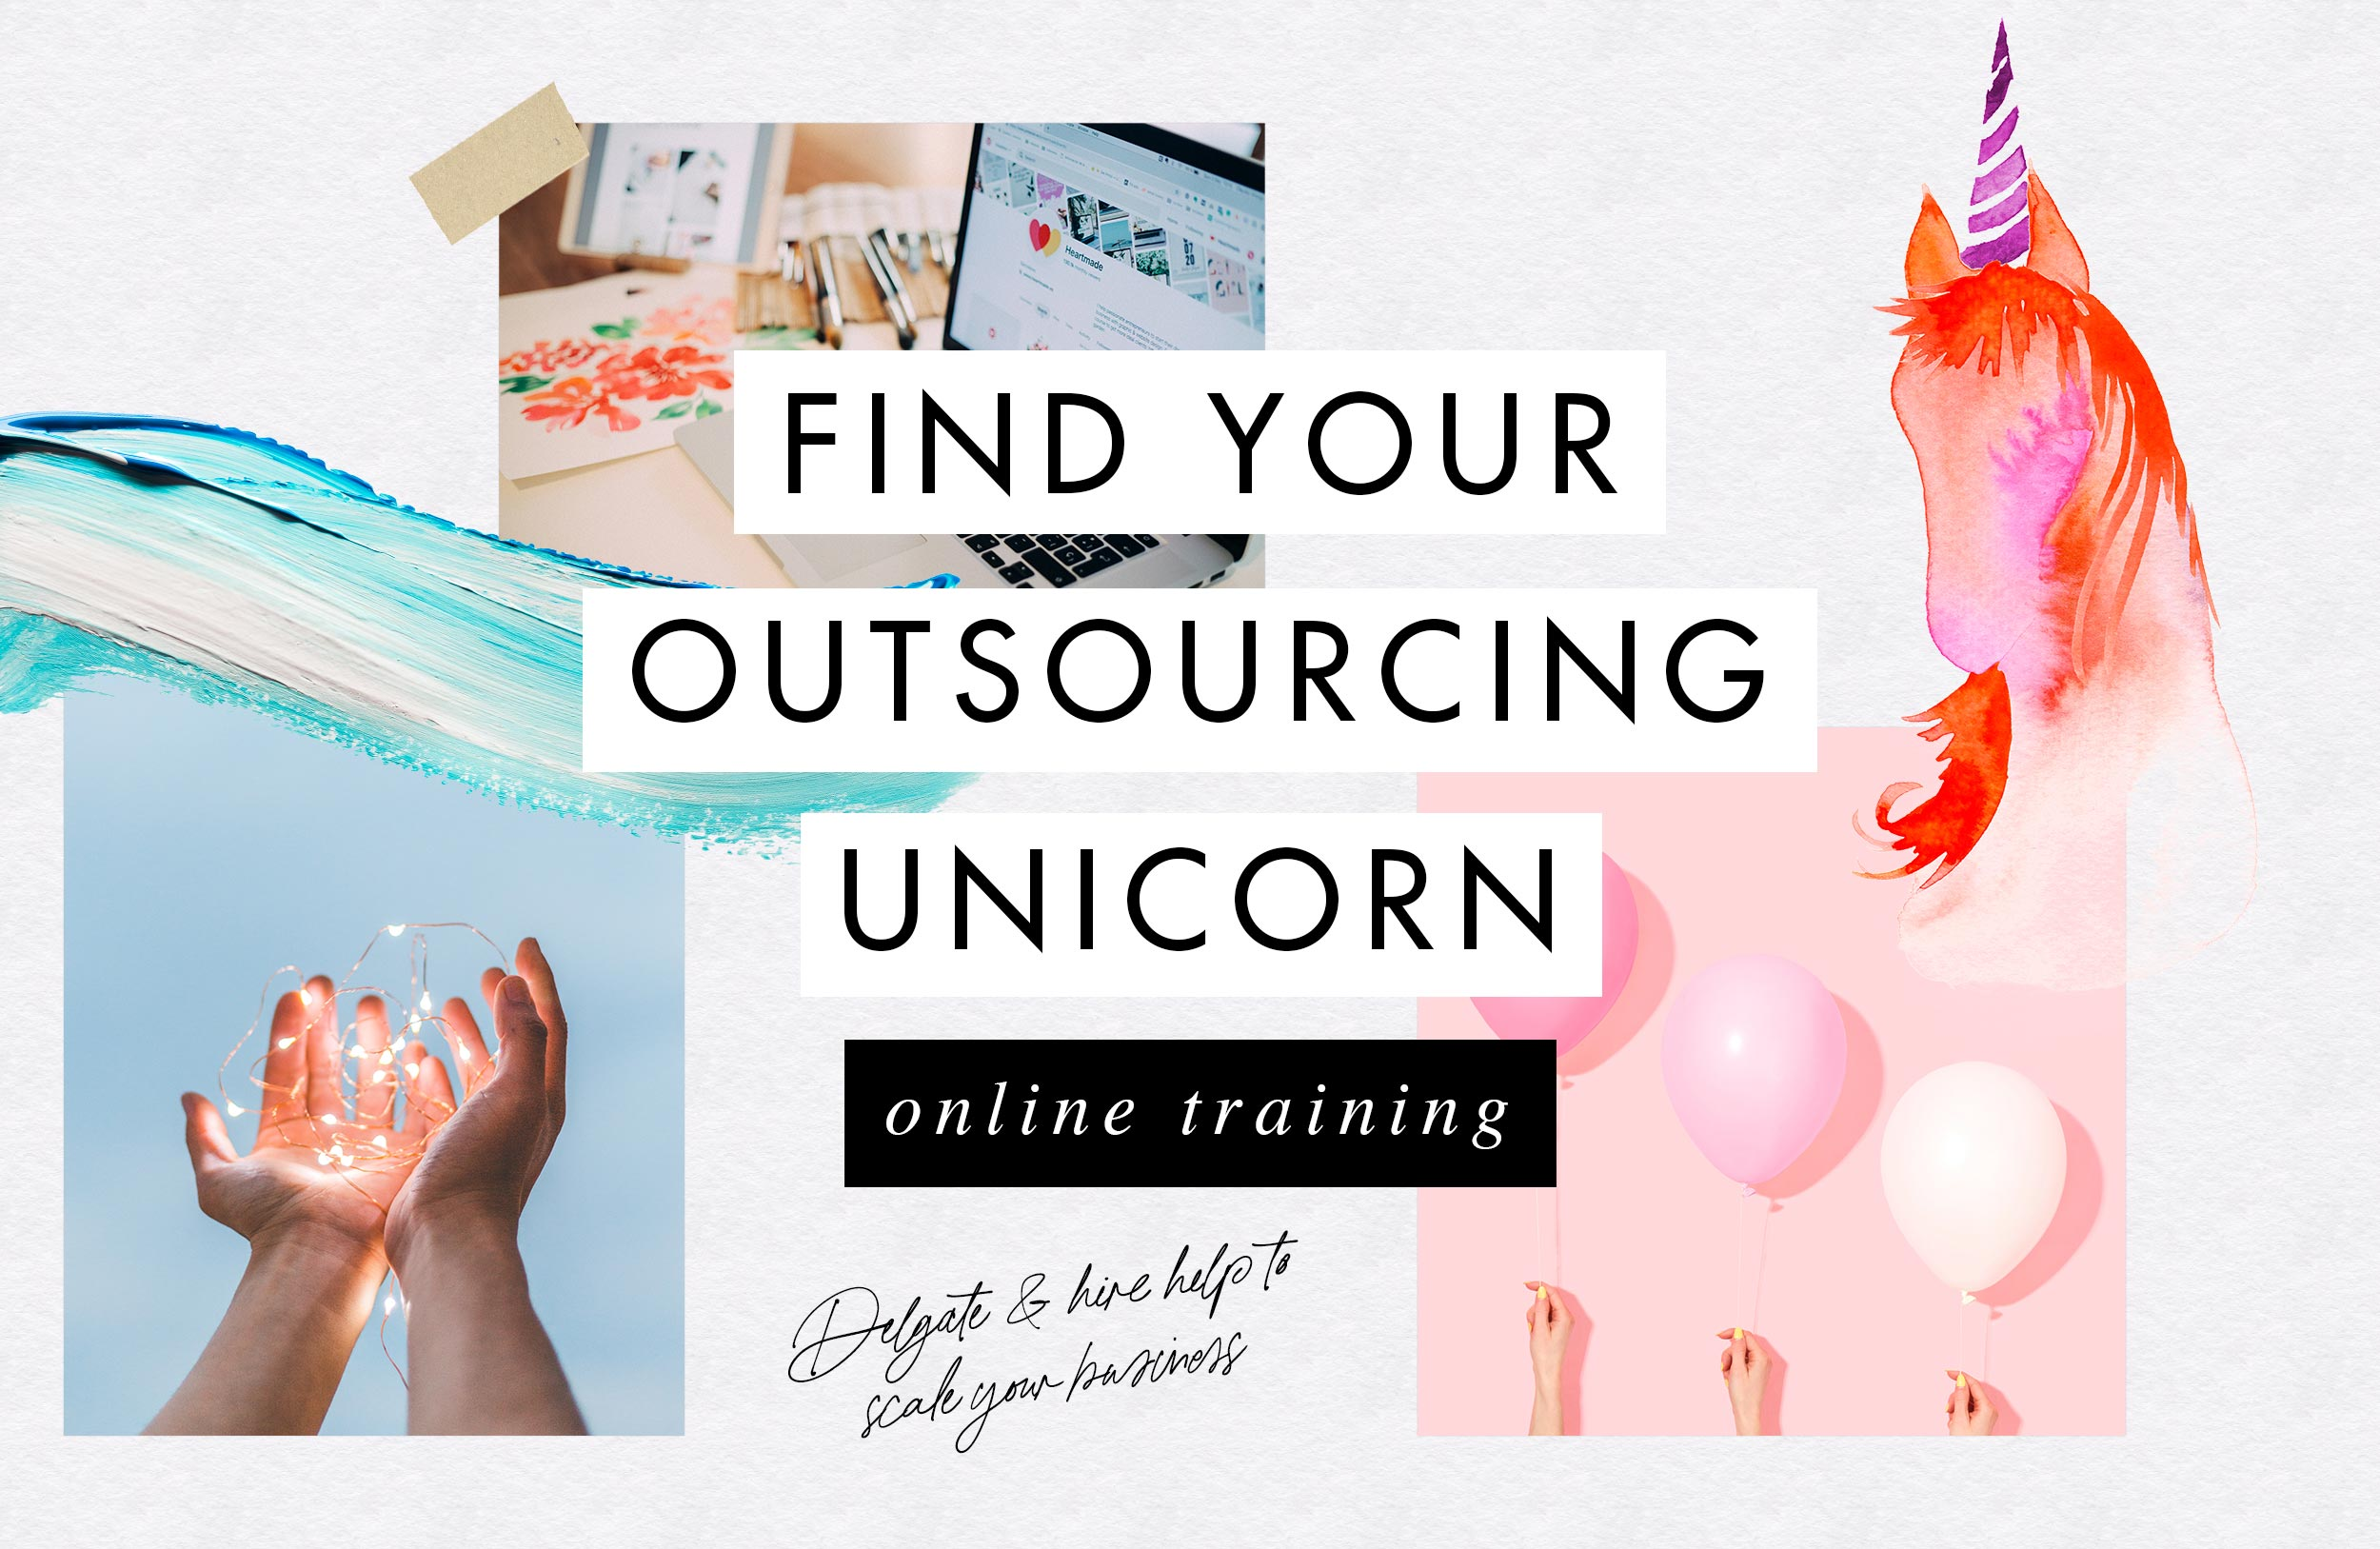 Find Your Outsourcing Unicorn Delegate & hire help to scale your business without compromising your values, the quality of your offers or your wallet.